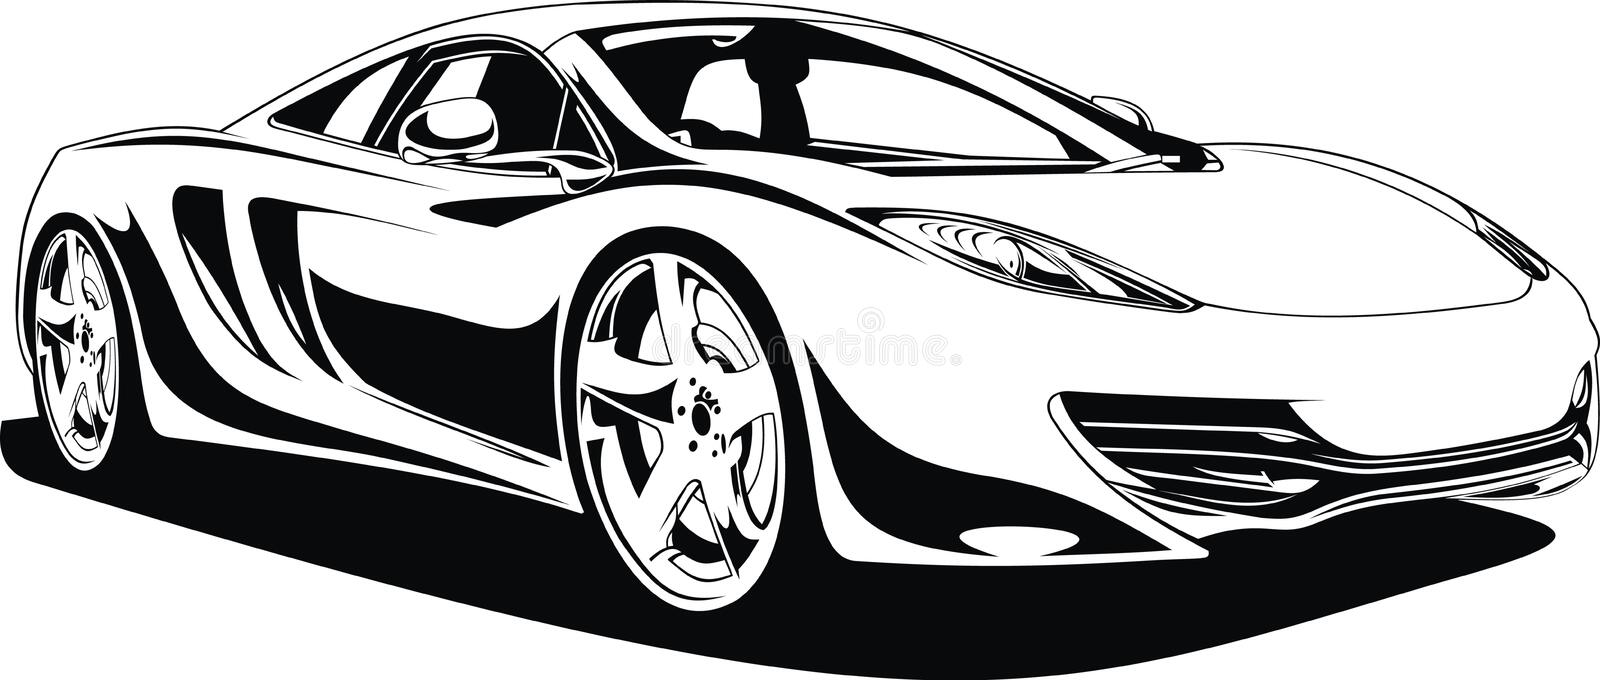 My Original Sport Car Design Black White Stock Illustrations 11 My Original Sport Car Design Black White Stock Illustrations Vectors Clipart Dreamstime